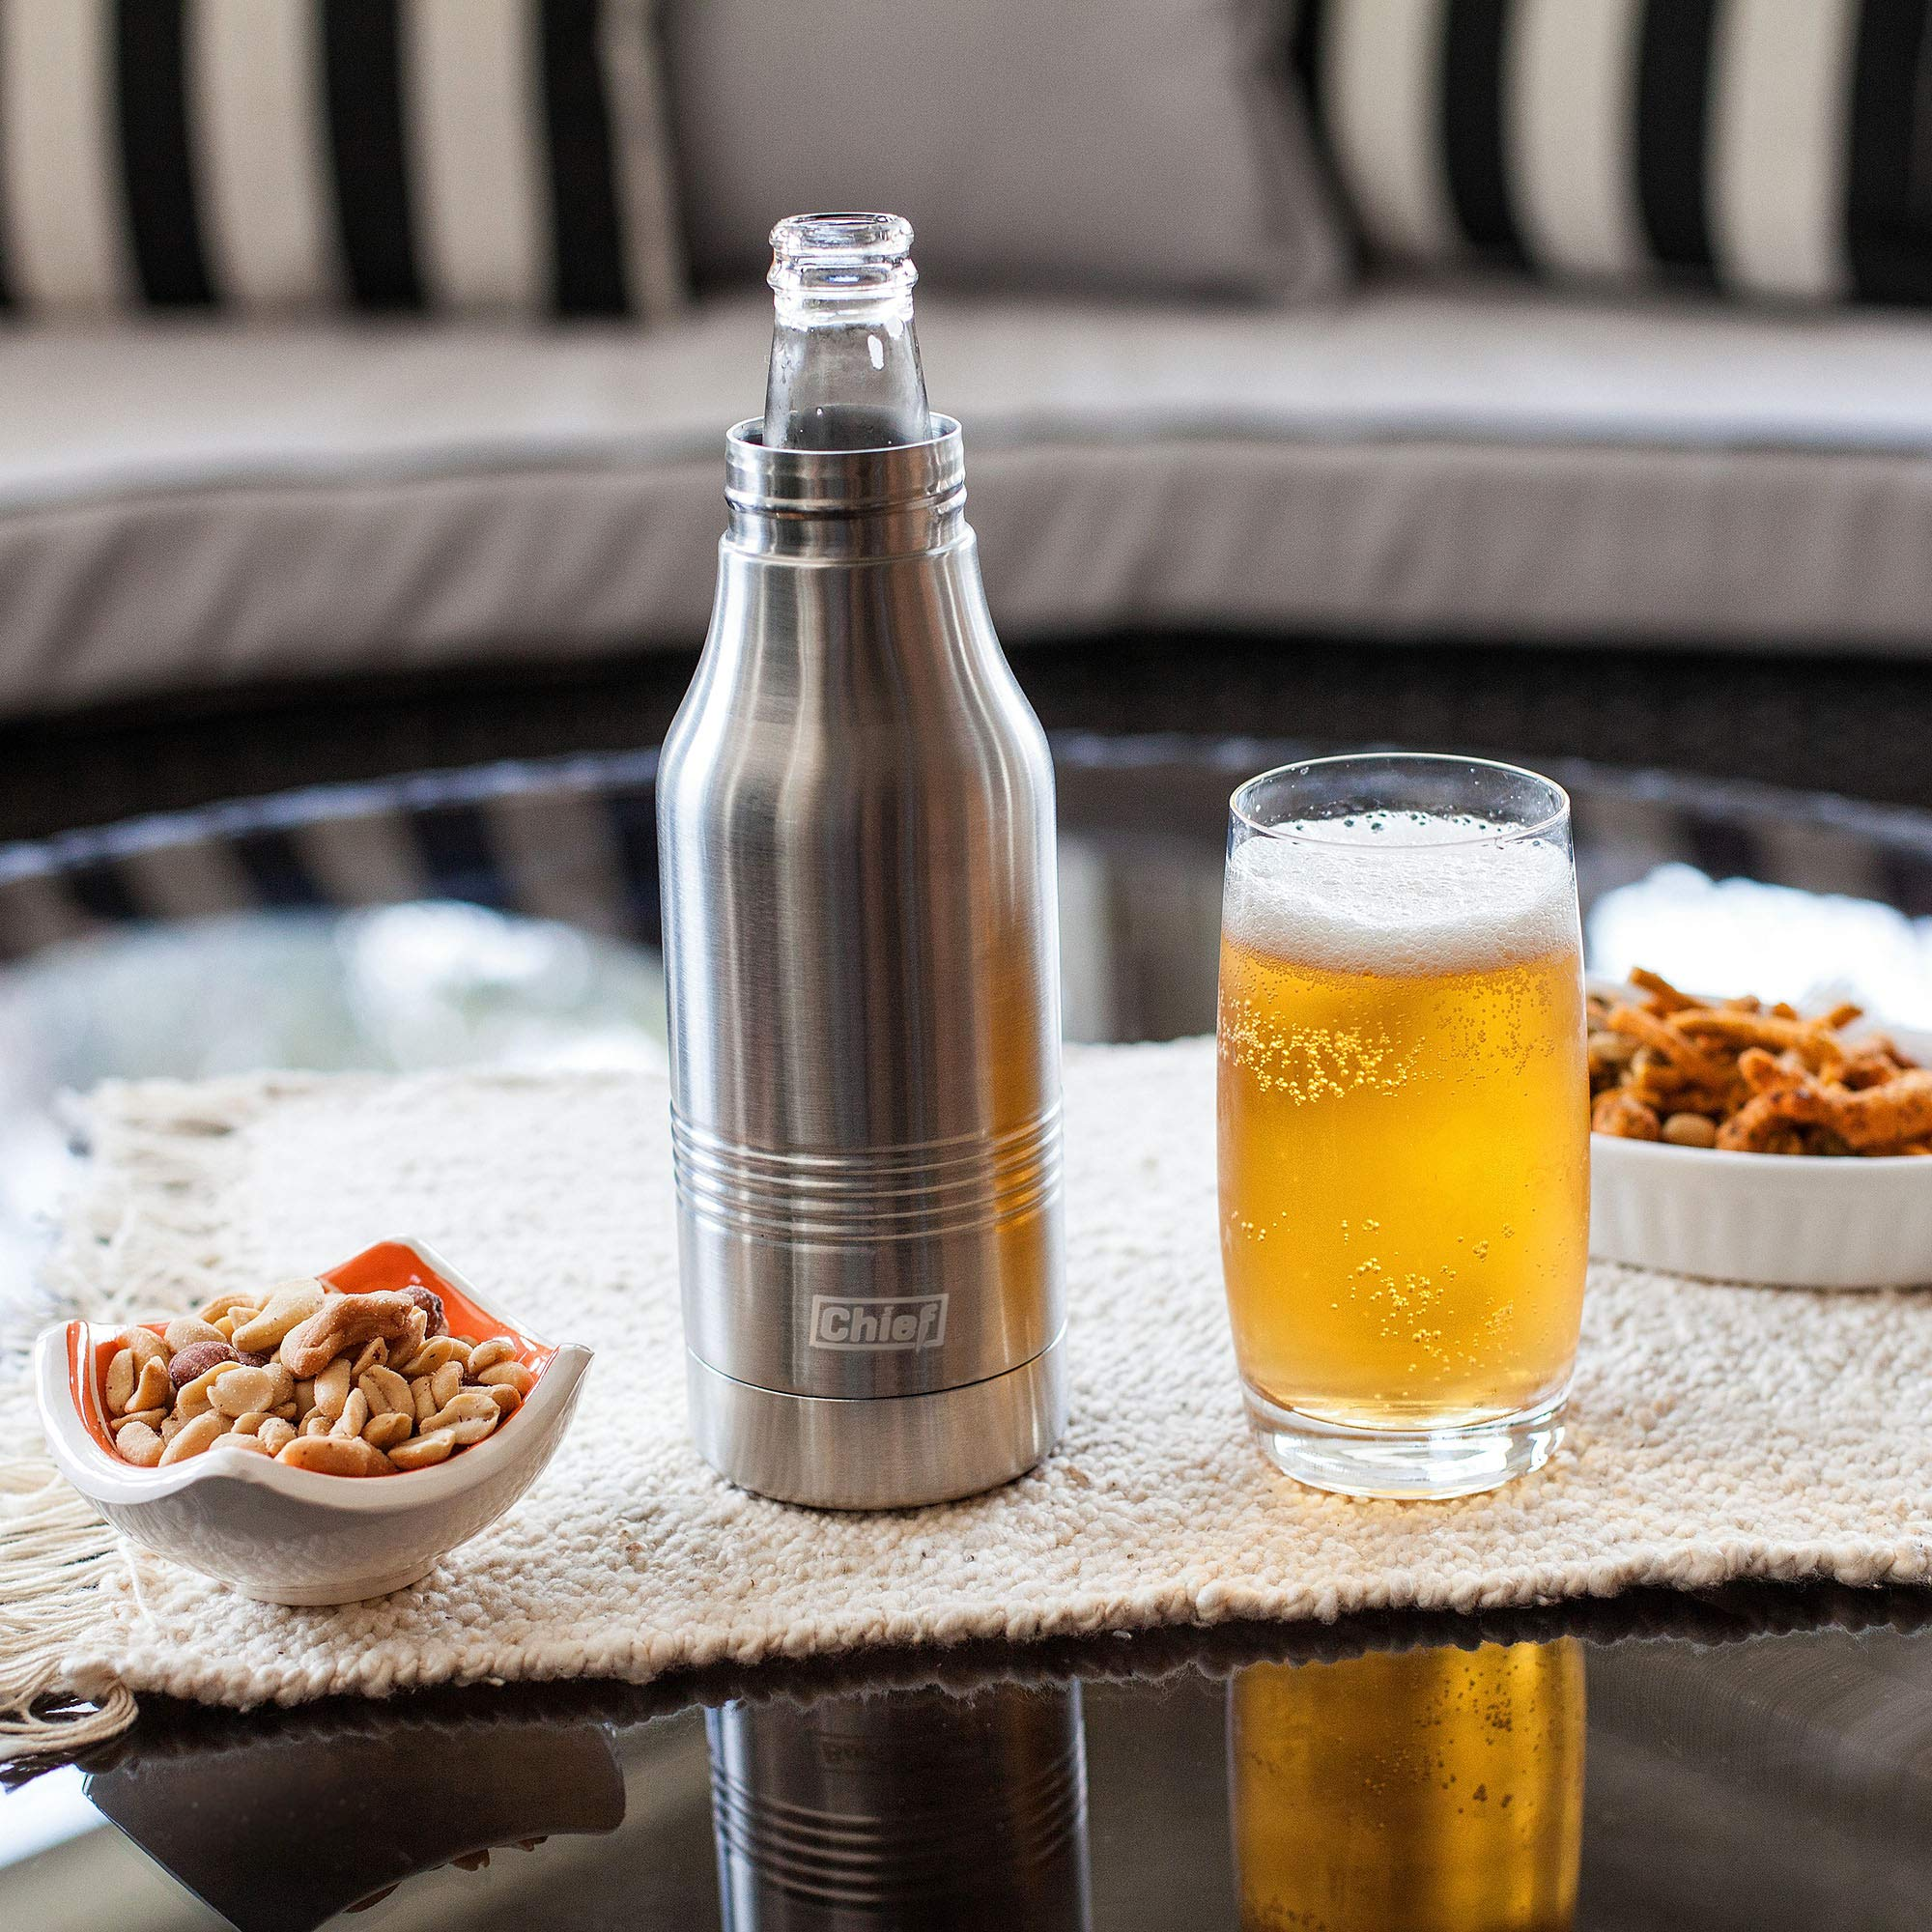 Beer Bottle Cooler- Double Wall Stainless Steel Beer Bottle Insulator. Great Gift ! BONUS e-Book and Gift Packaging. by Chief (Image #6)